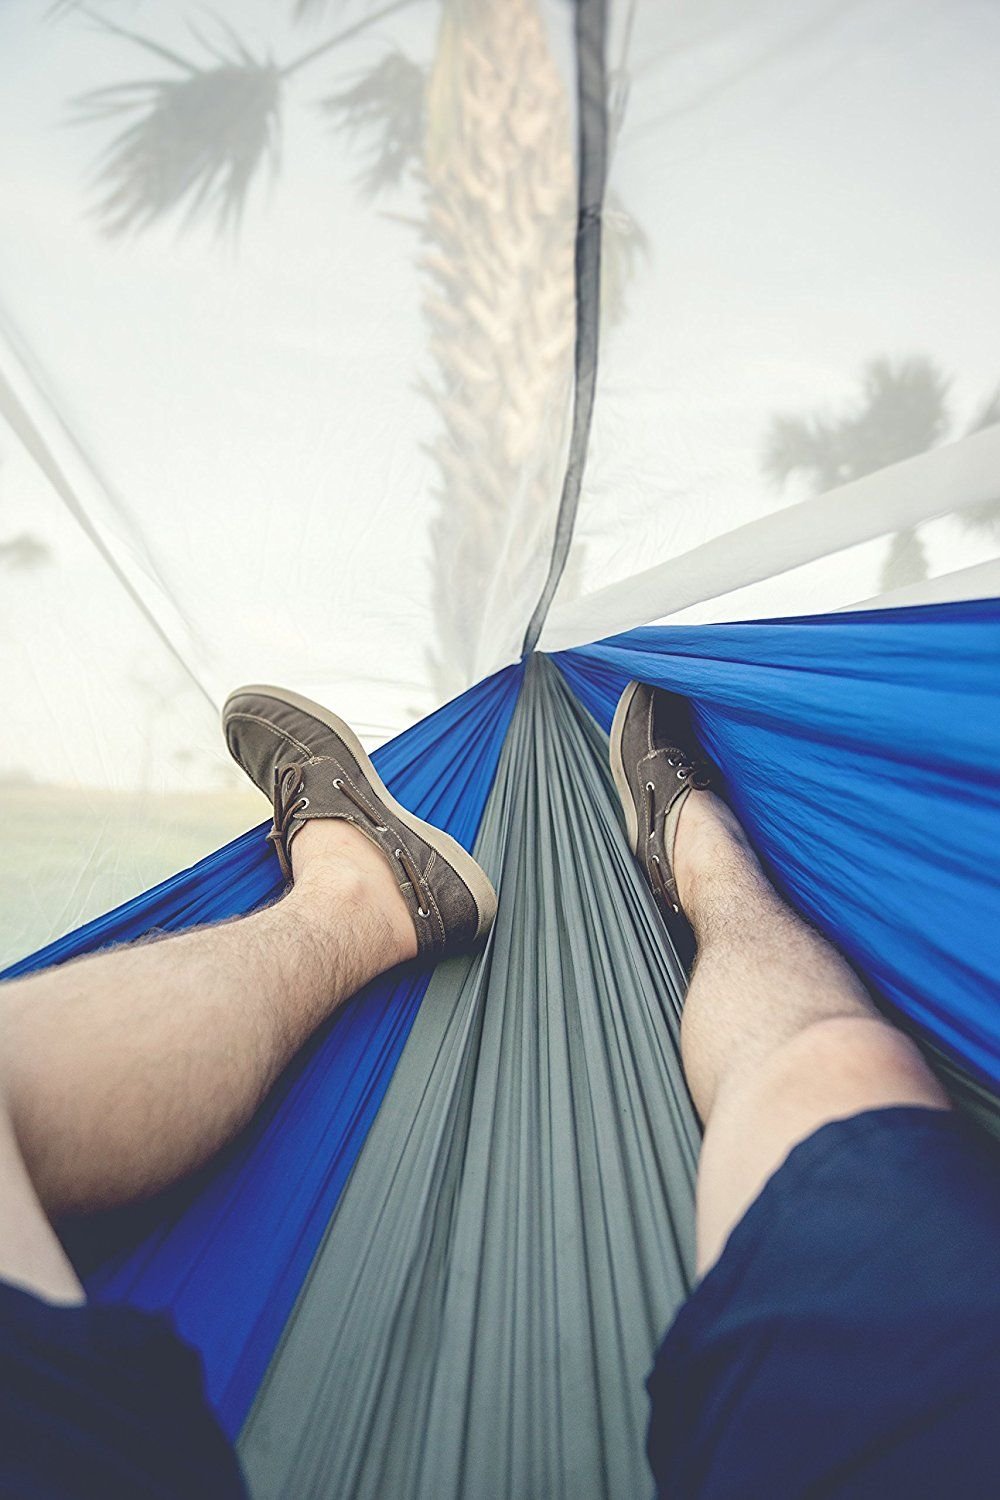 No 1 Hammock Mosquito Net Camping Hammock Bug Net Perfect For Backpacking Camp And Travel By Serac You Can Get More Details Here Campin Materiel Camping